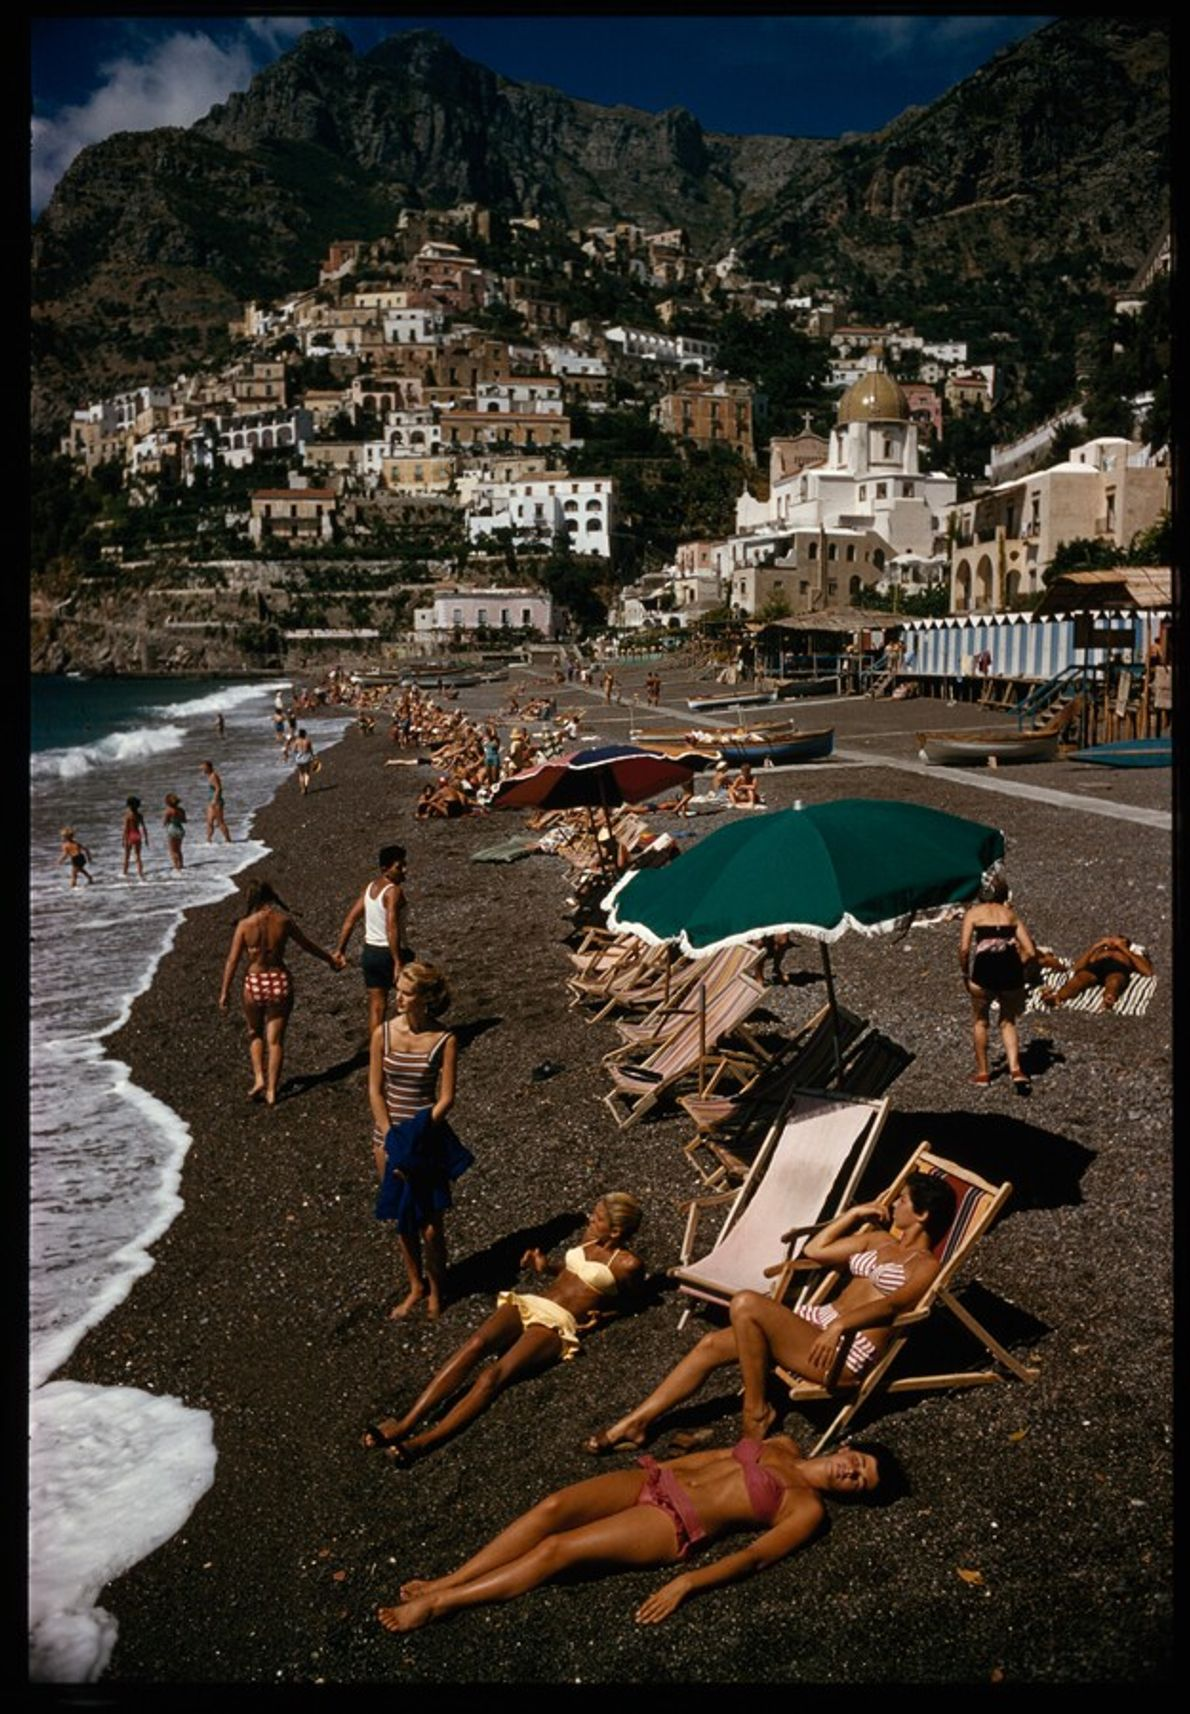 Sunbathers relax beneath the buildings of 'vertical town' Positano, 1959. The glamour of Italy in the ...